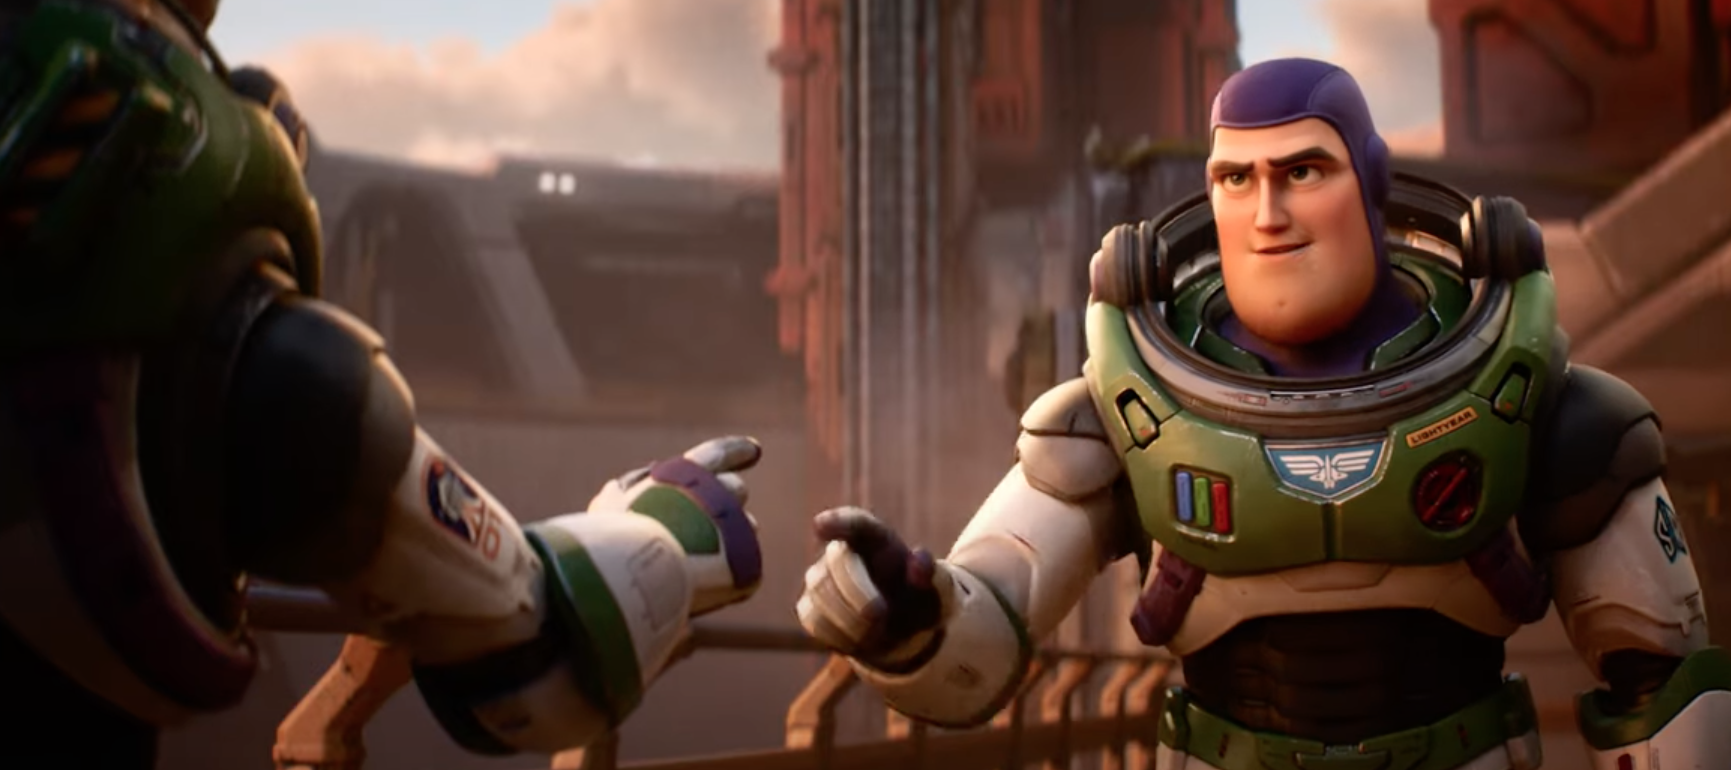 buzz lightyear in his green and white suit